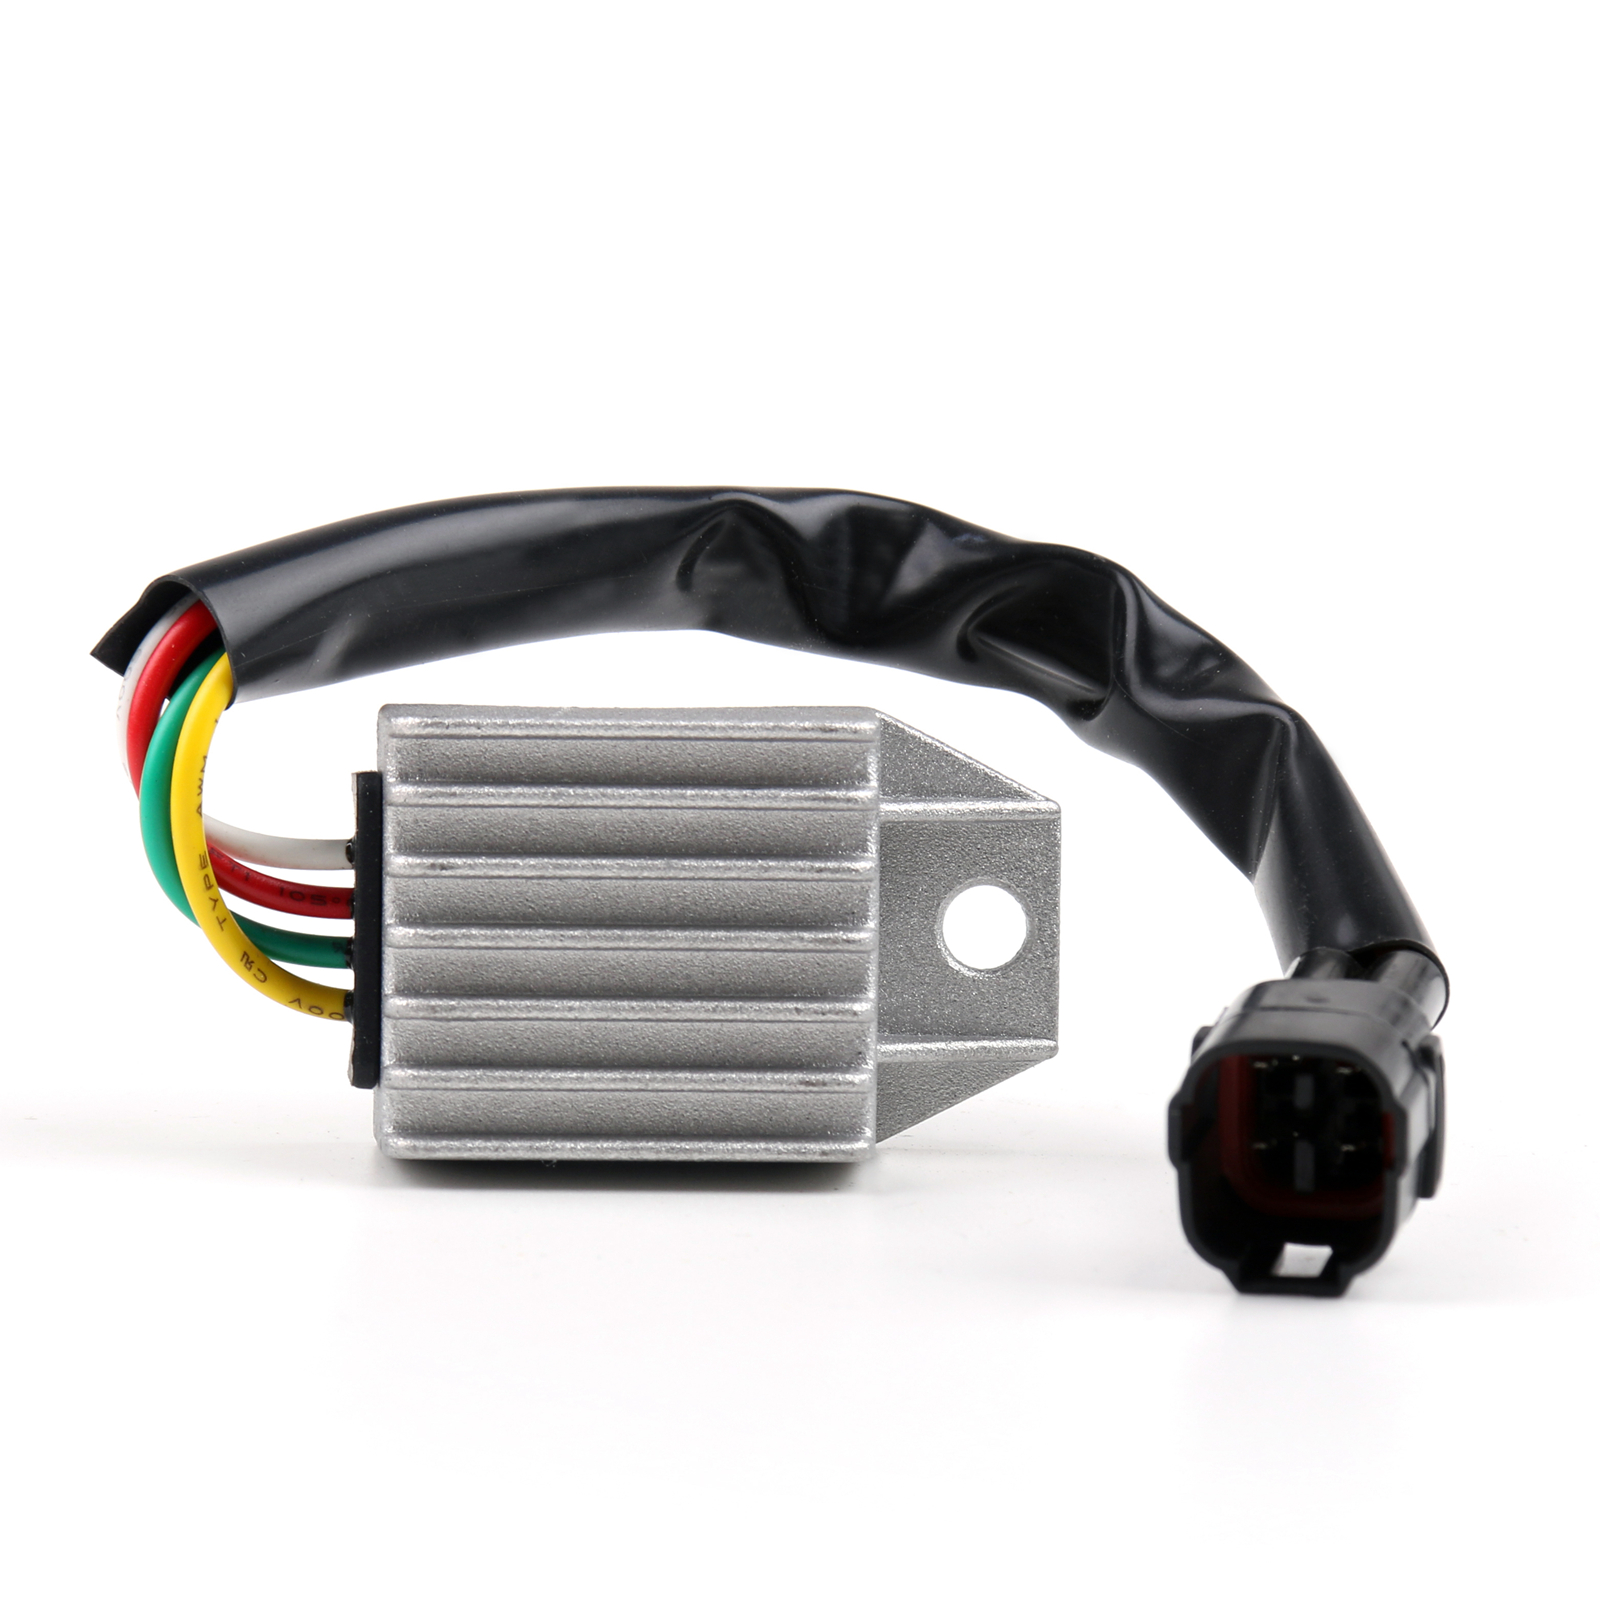 100% Brand New direct OEM replacement voltage regulator rectifier. The  product is tested. Color:Same as picture show. Quantity: 1 pc